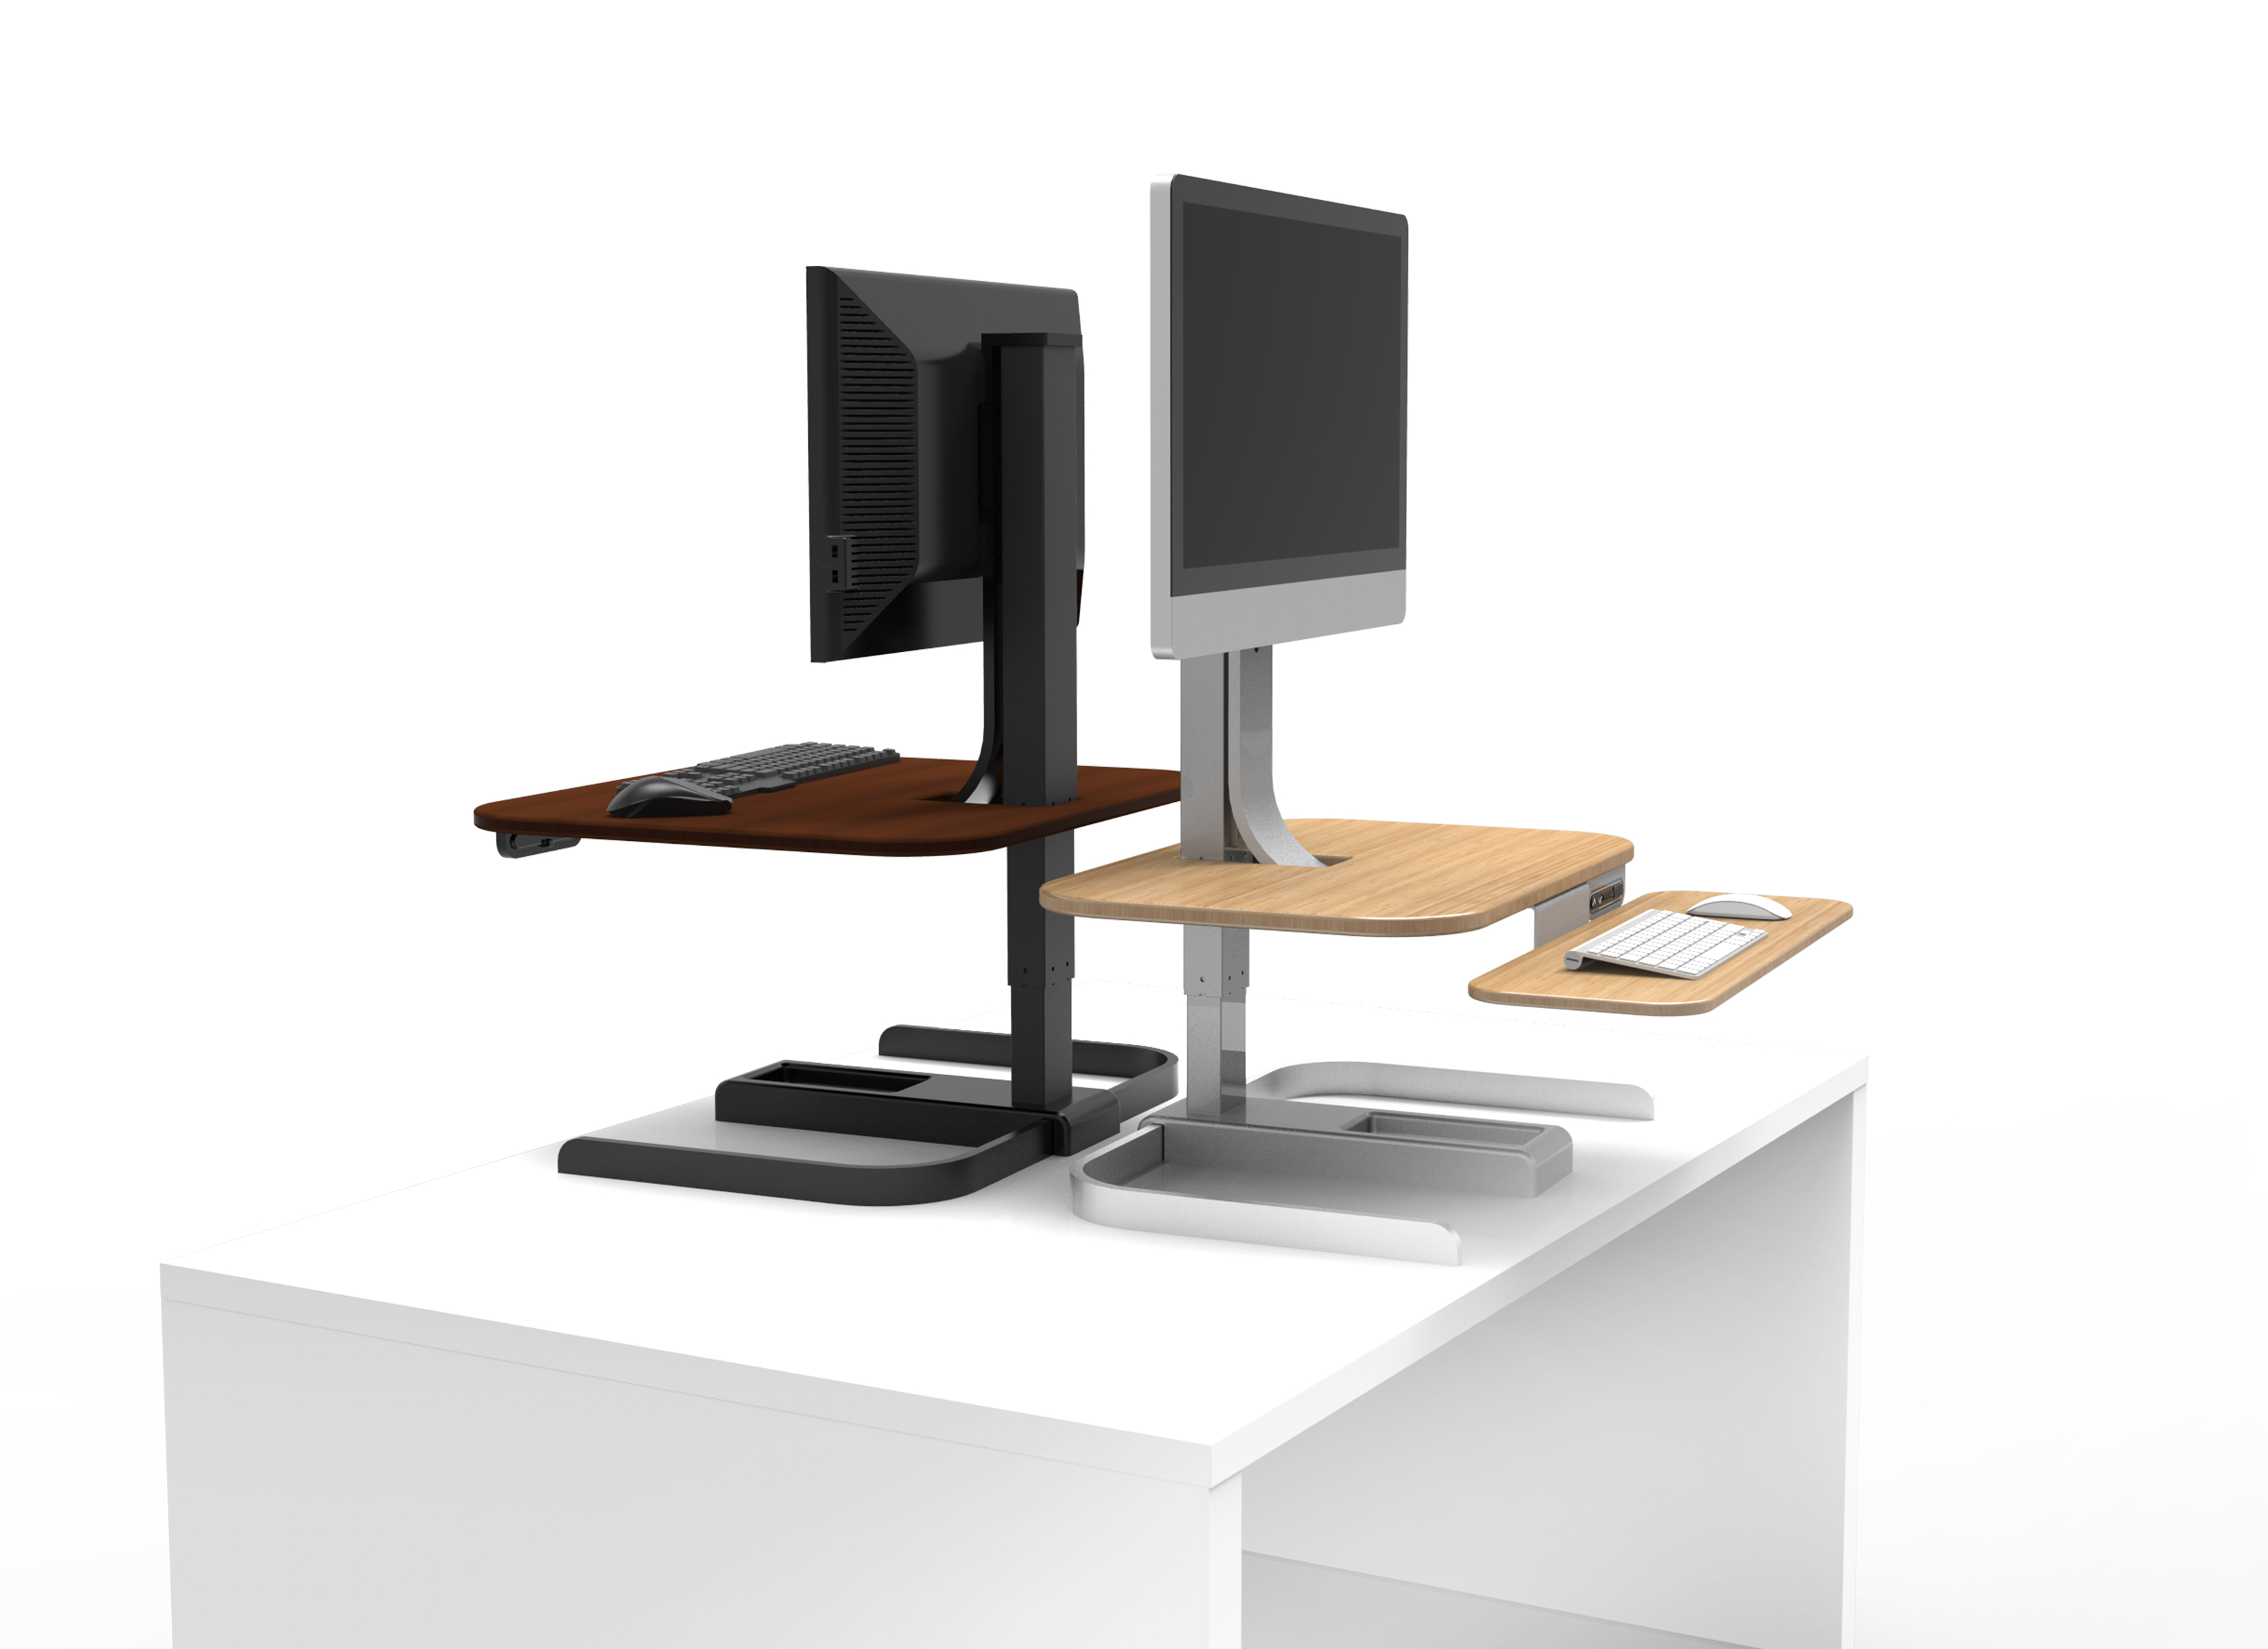 height size best corner pc table platform converter using tabletop vivo hydraulic hot desks canada desk adjustable riser top elevated on up computer sit of decorating and existing standing office workstation to stand full in